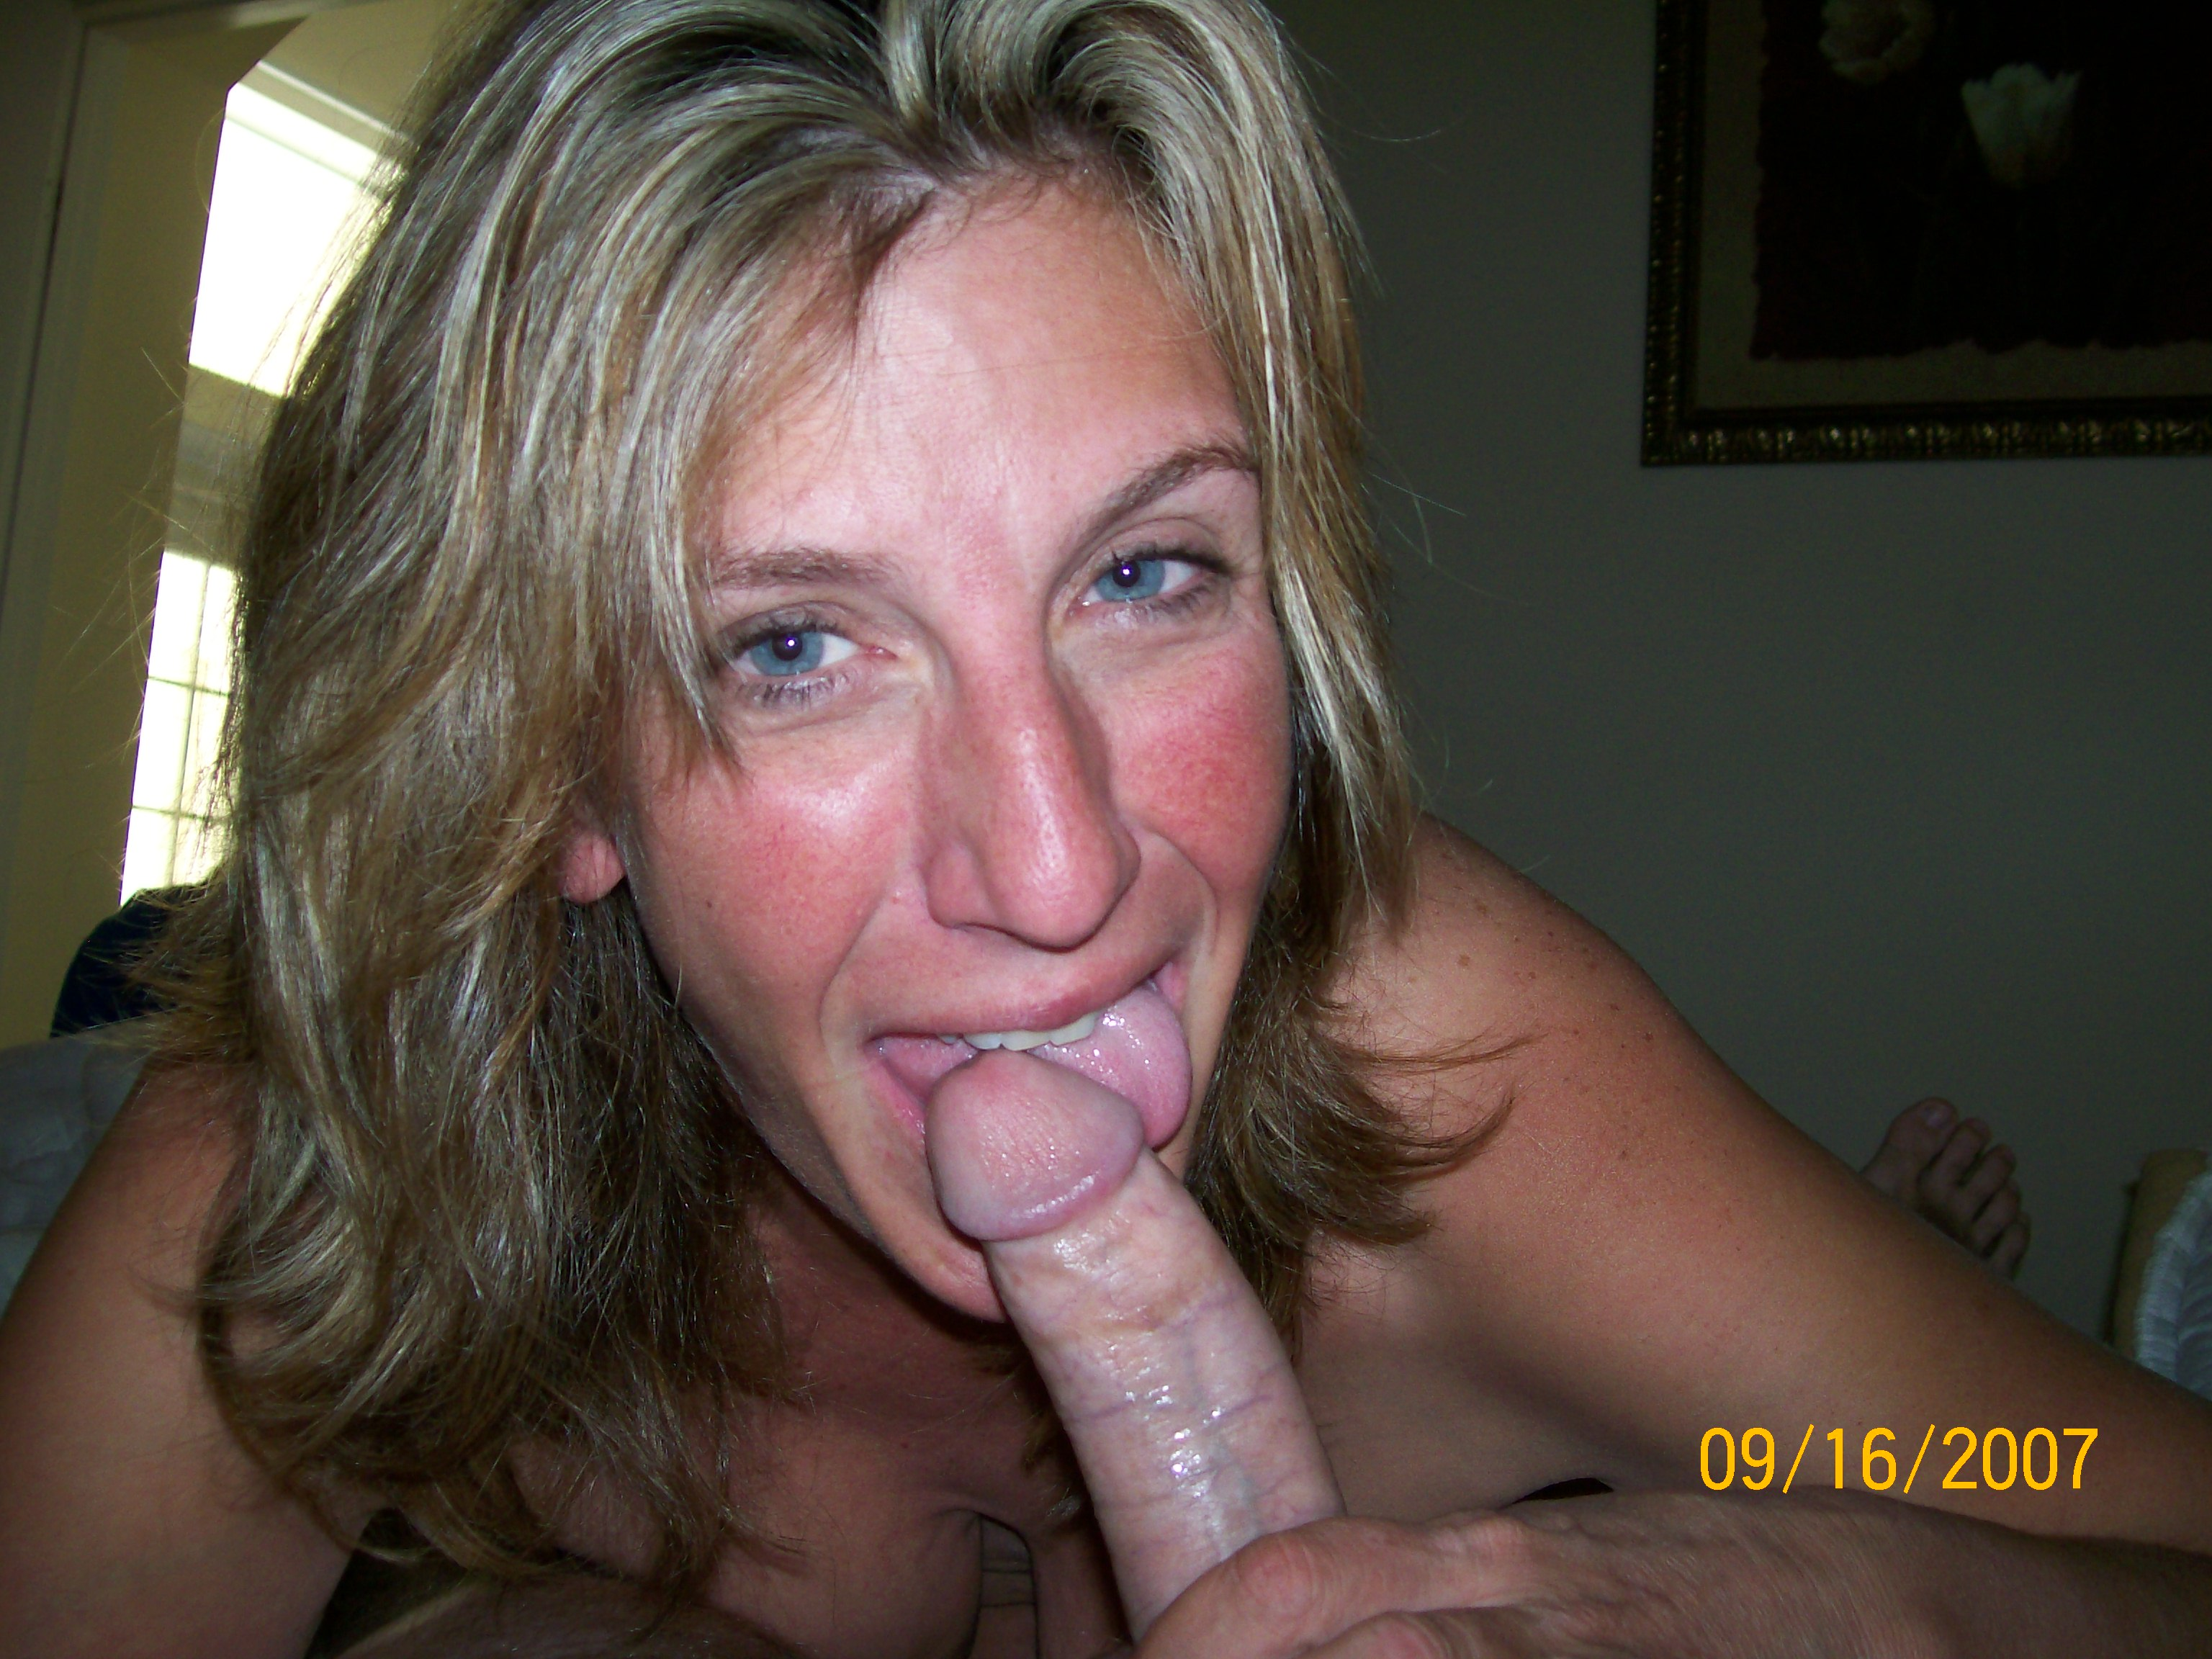 real incest fsmily motherless home I'm now begging my sister for her pussy